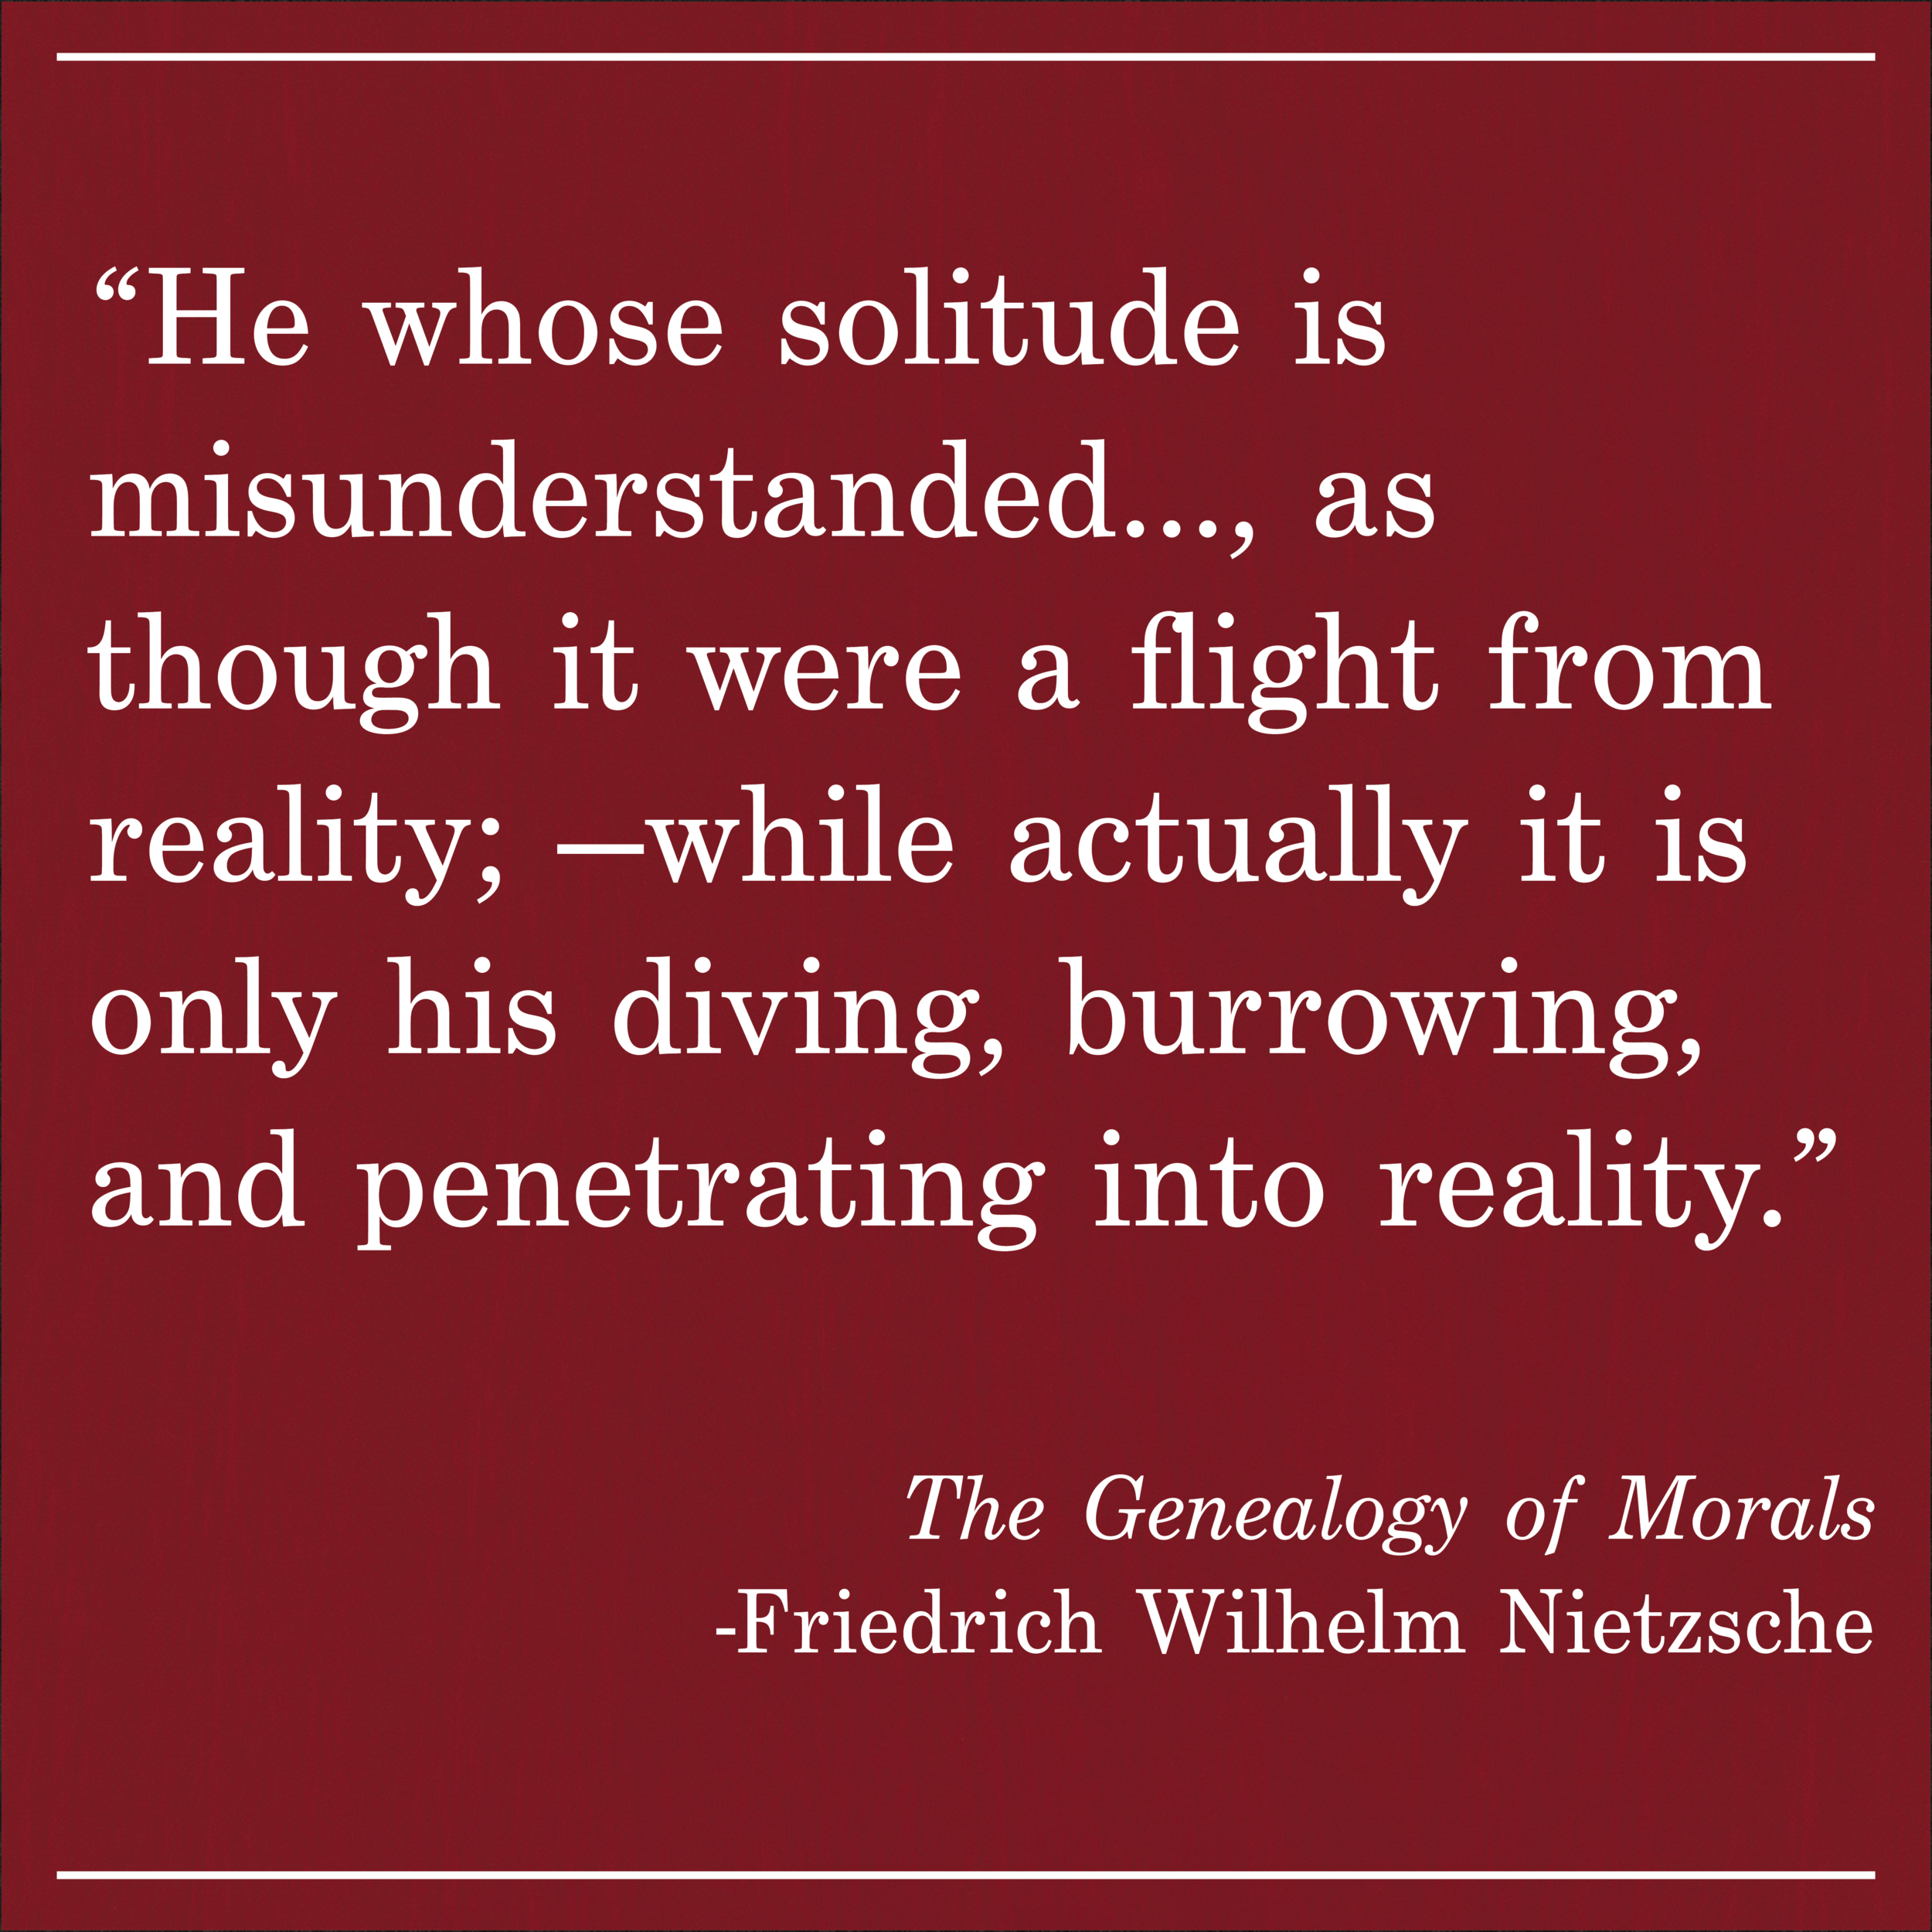 Daily Quote The Genealogy of Morals by Friedrich Wilhelm Nietzsche